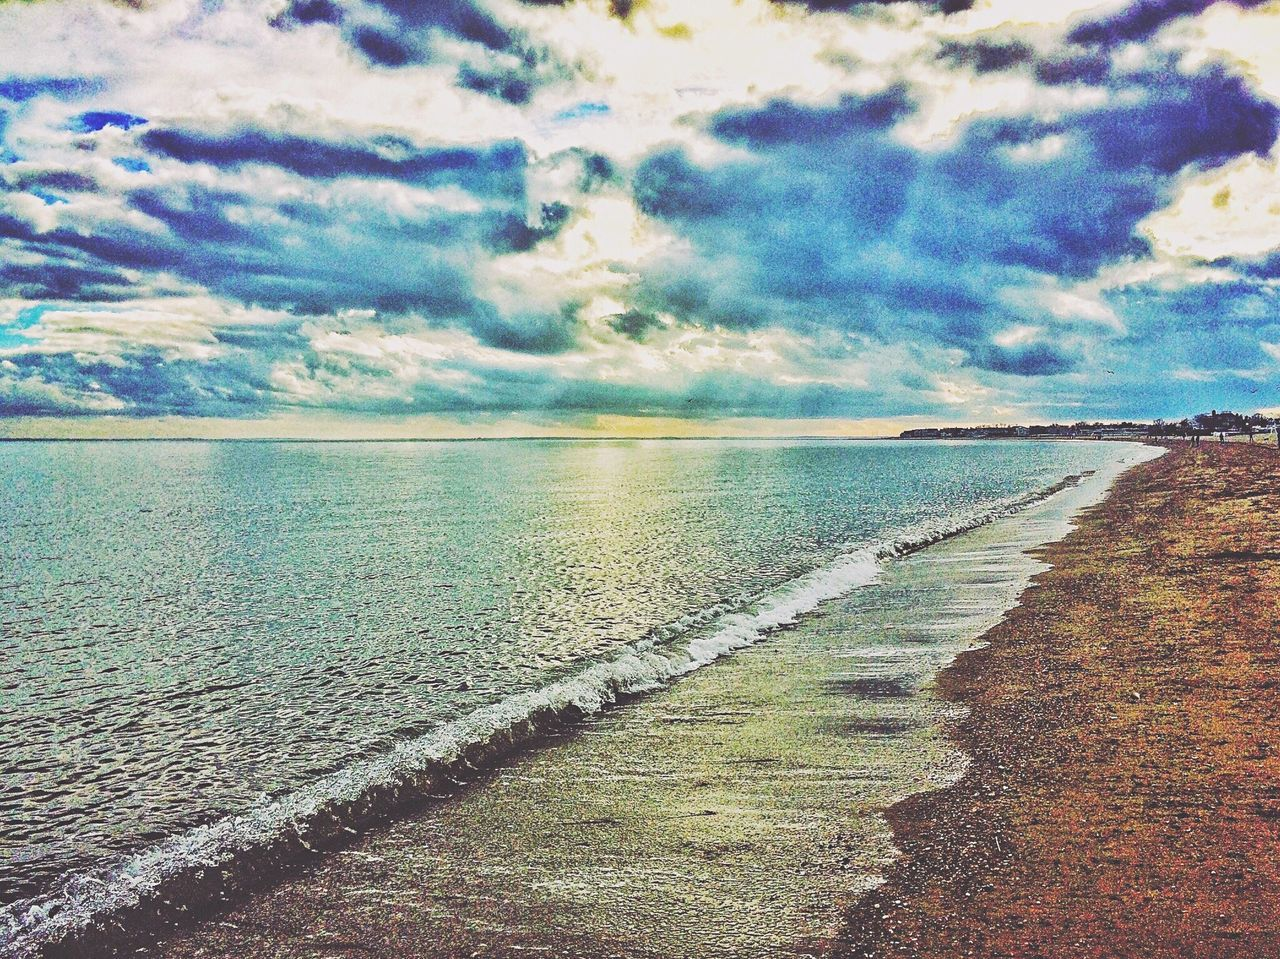 Penfield Beach in Fairfield Connecticut Long Island Sound Beach Outdoor Photography Outdoors❤ Outdoors Outside Outside Photography Nature USA IPhone Photography IPhoneography Water Beach Photography Beachphotography